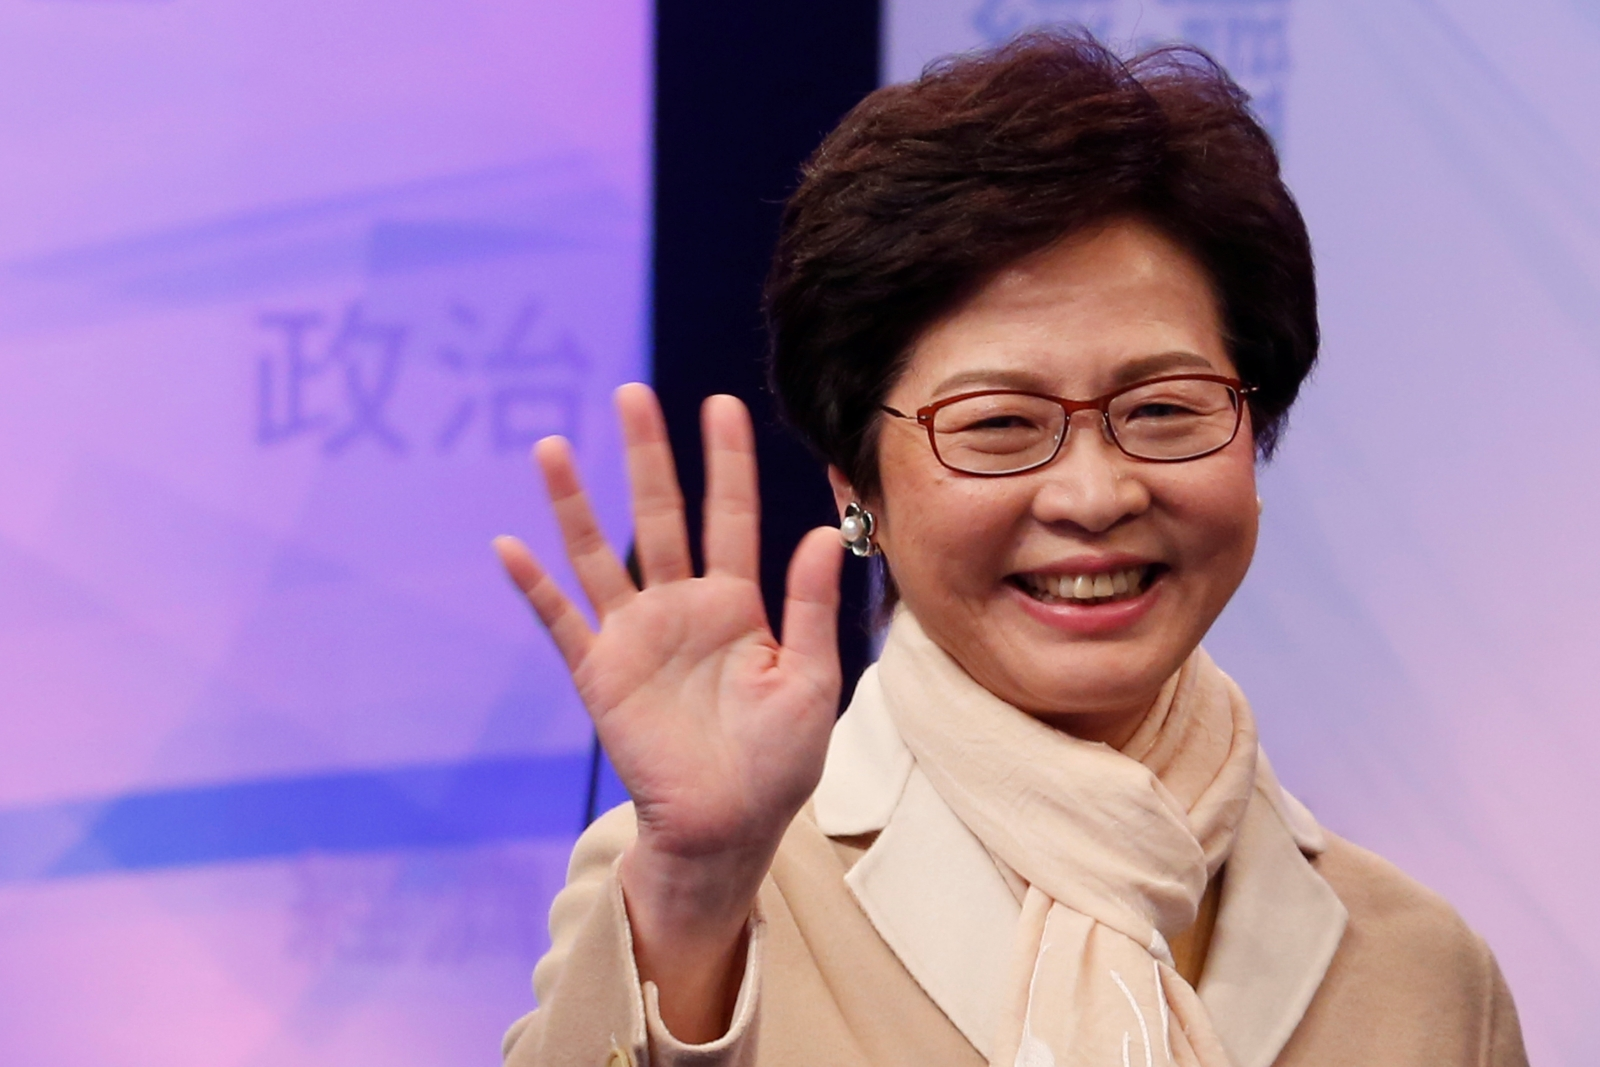 Carrie Lam becomes first woman to win Hong Kong's Chief Executive election